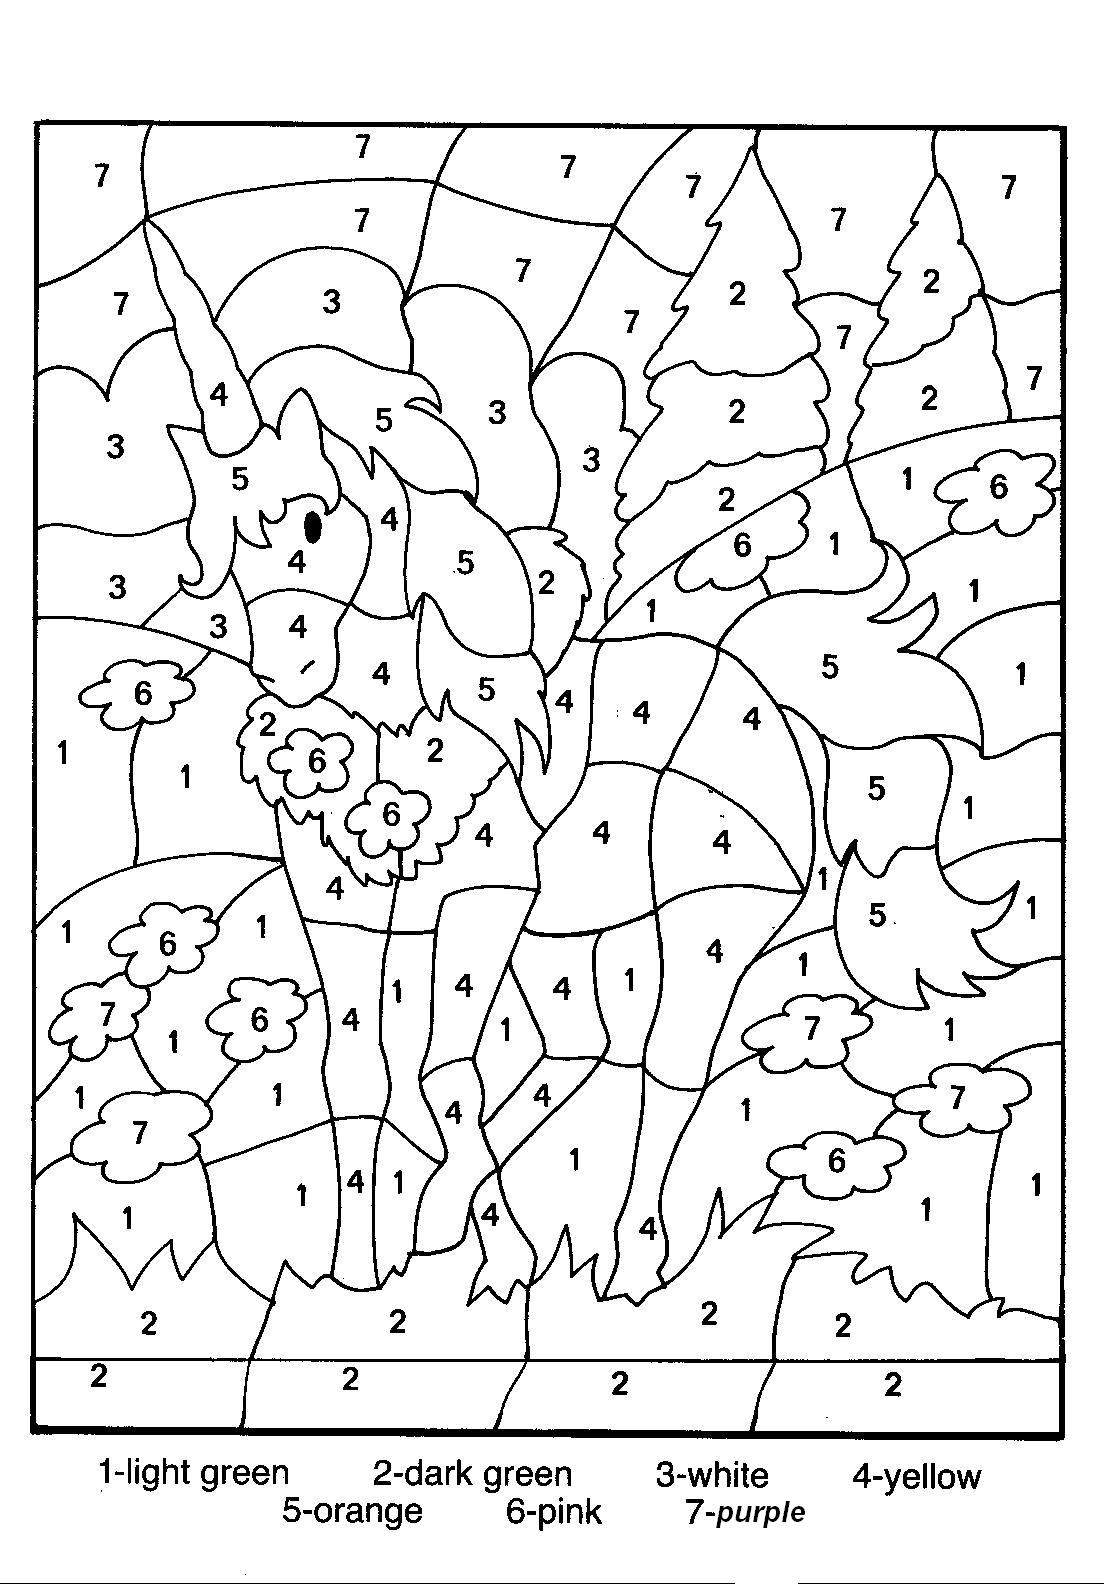 download number coloring pages 14 - Colouring In Activities